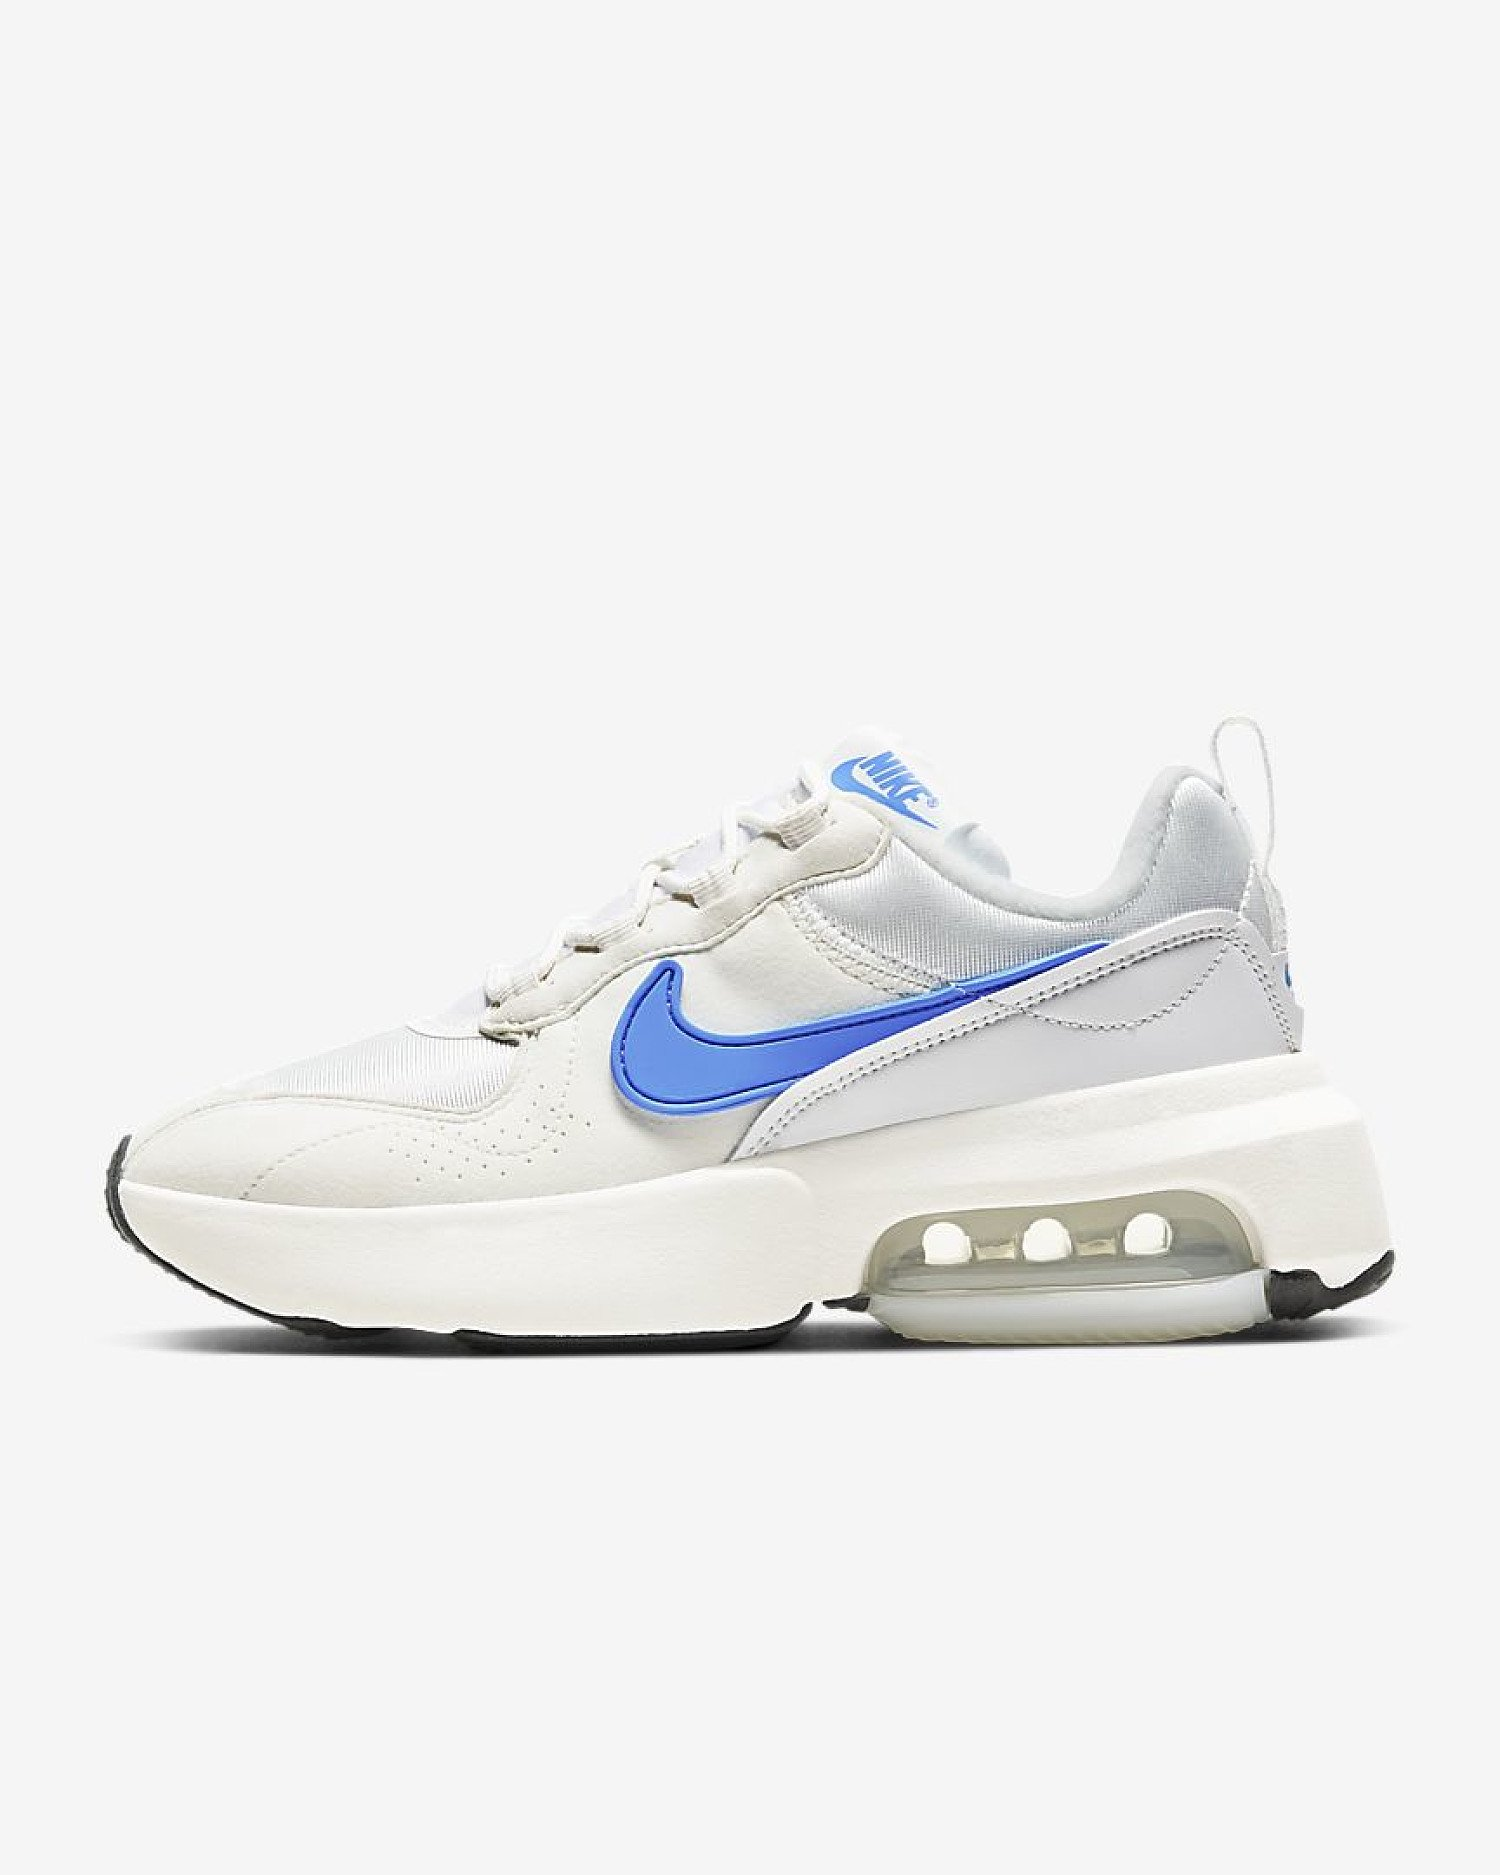 Get an additional 20% off Sale items at Nike.com!